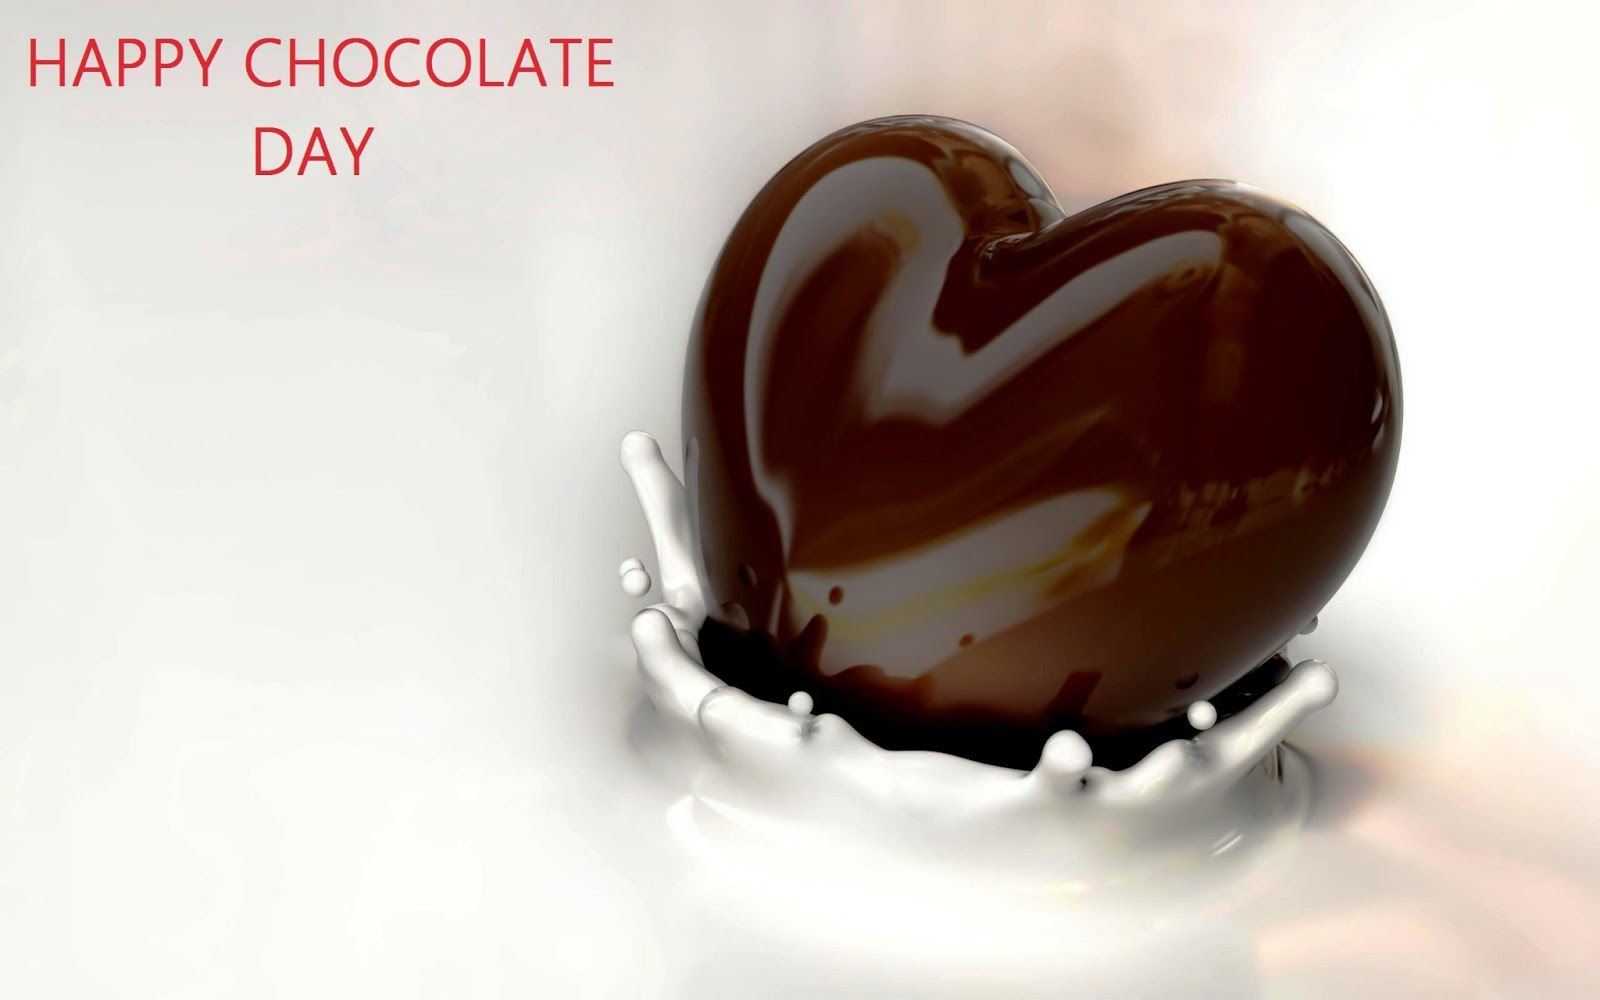 Download Send Chocolate Day Wallpapers e-Greetings wishes sms